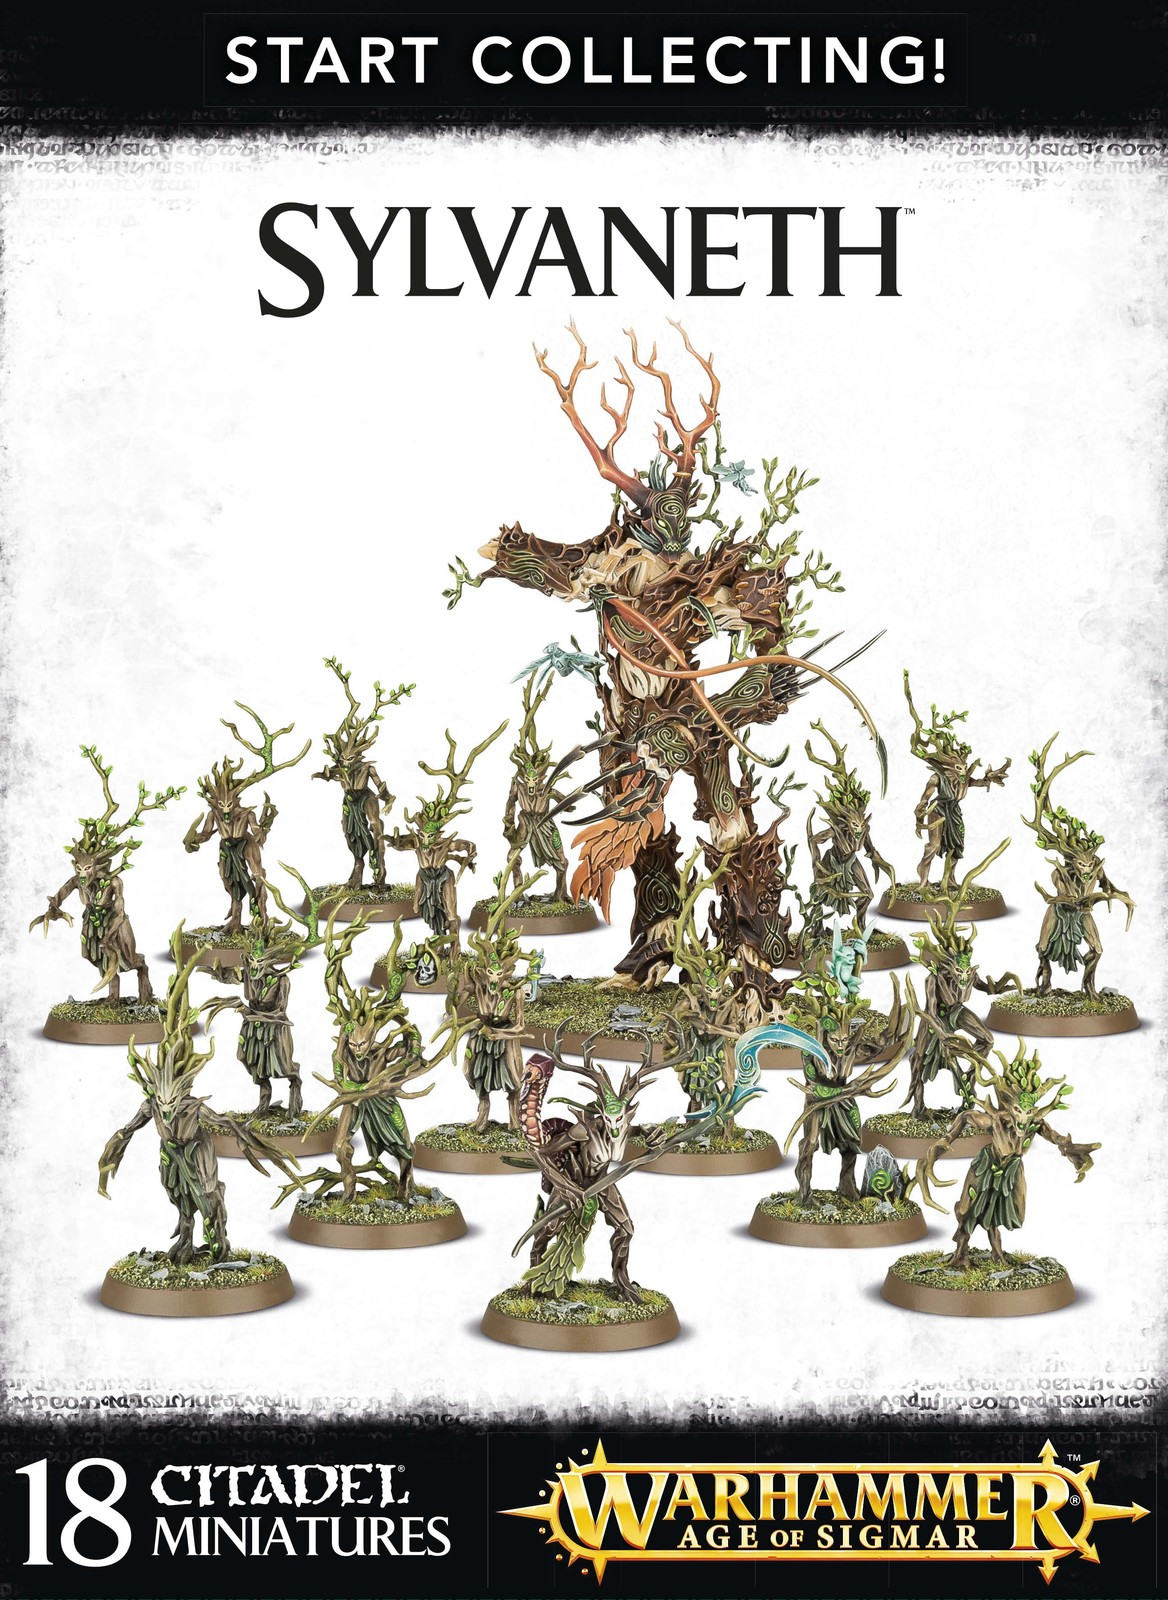 Start Collecting Sylvaneth image